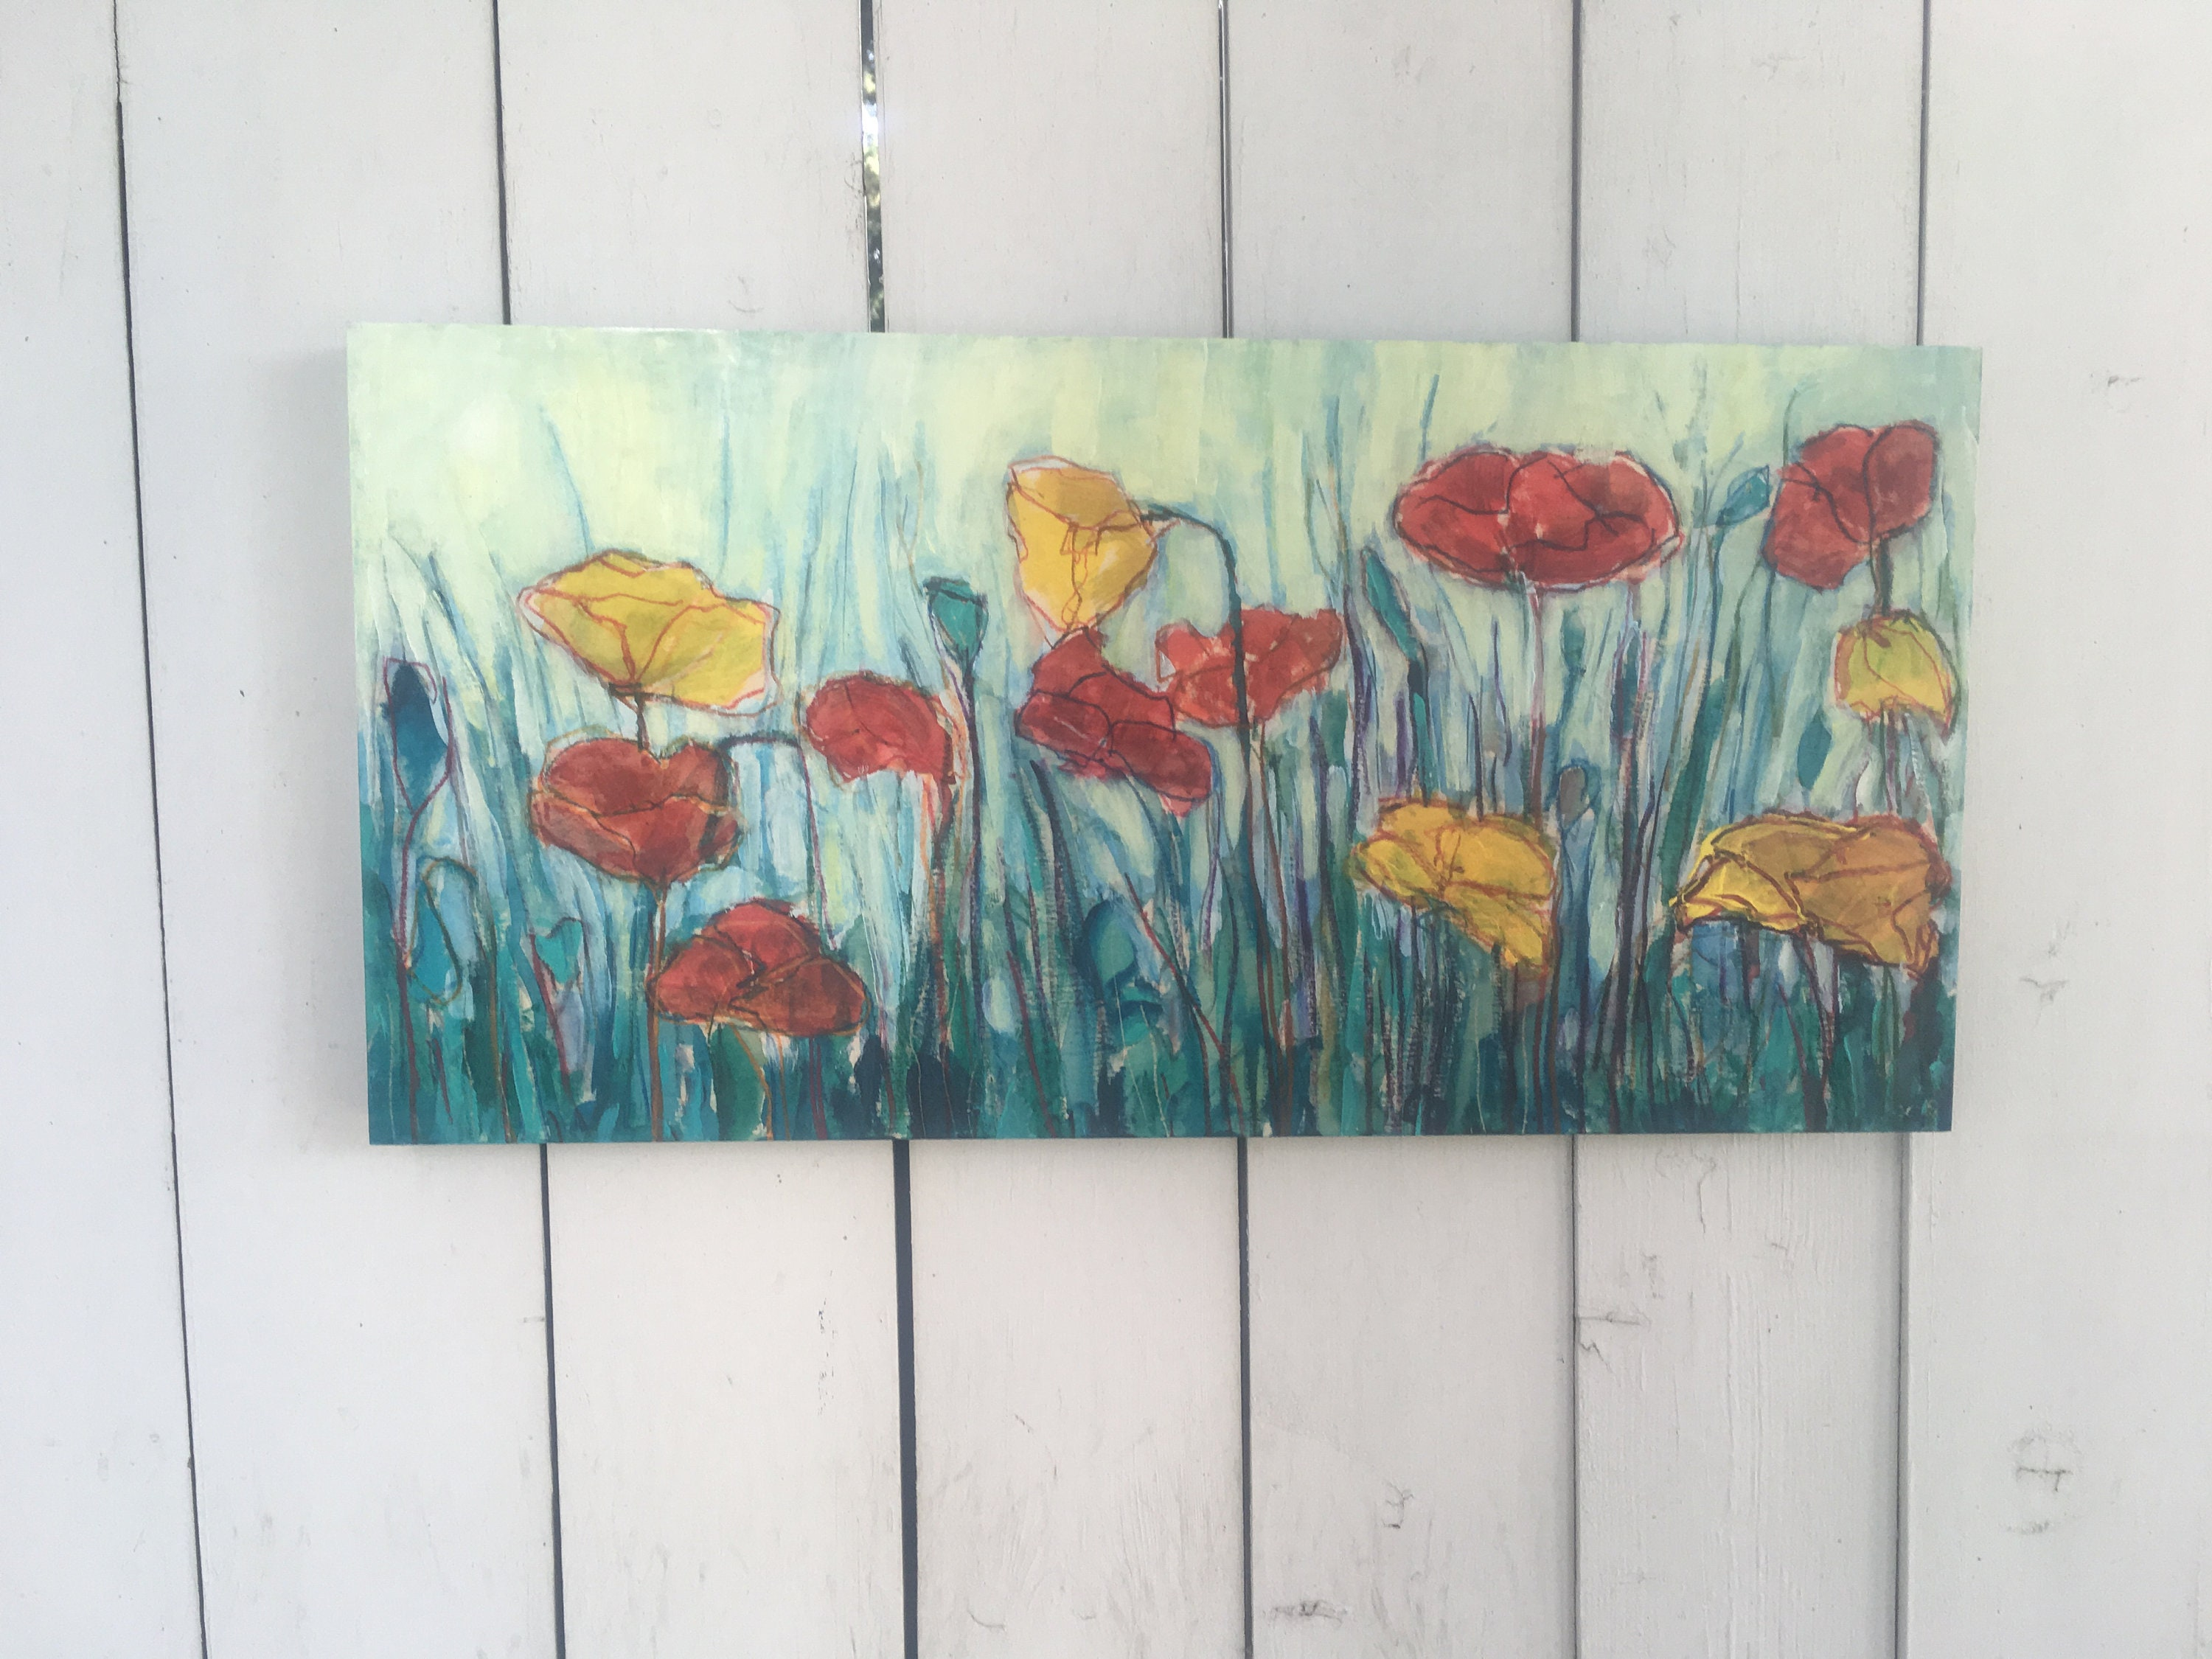 12x24 Inch Original Acrylic Painting On Birch Floral Flower